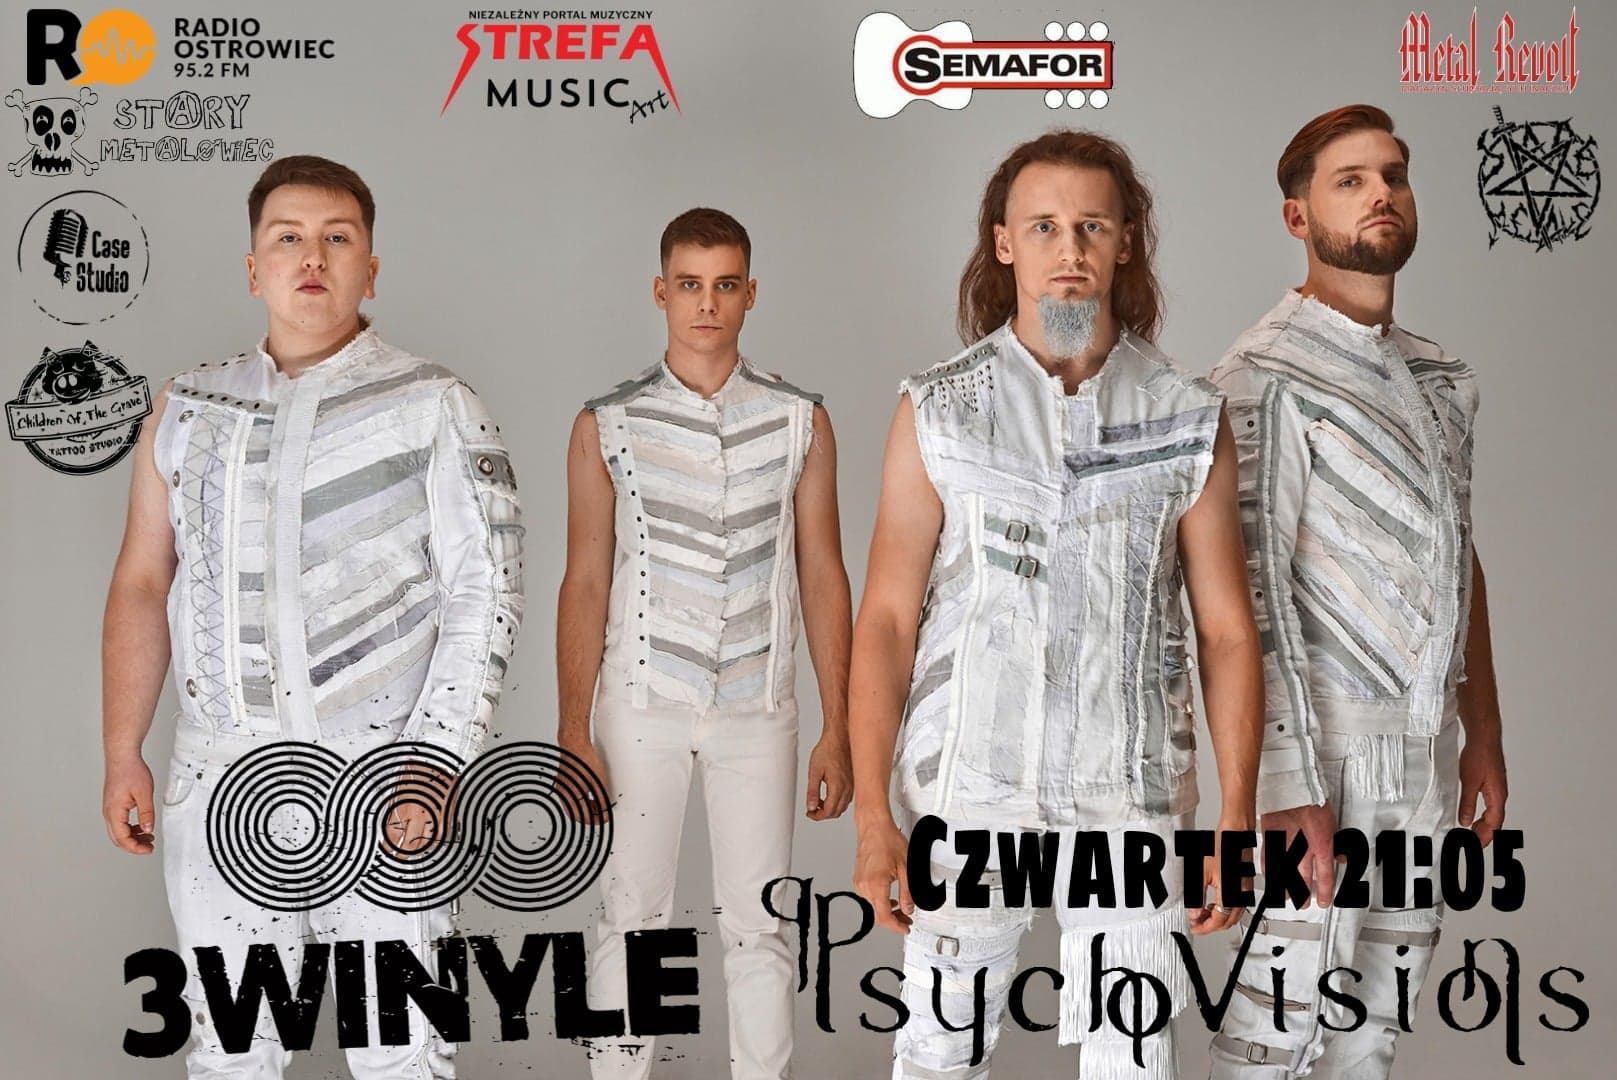 Psycho Visions - Trzy Winyle broadcast